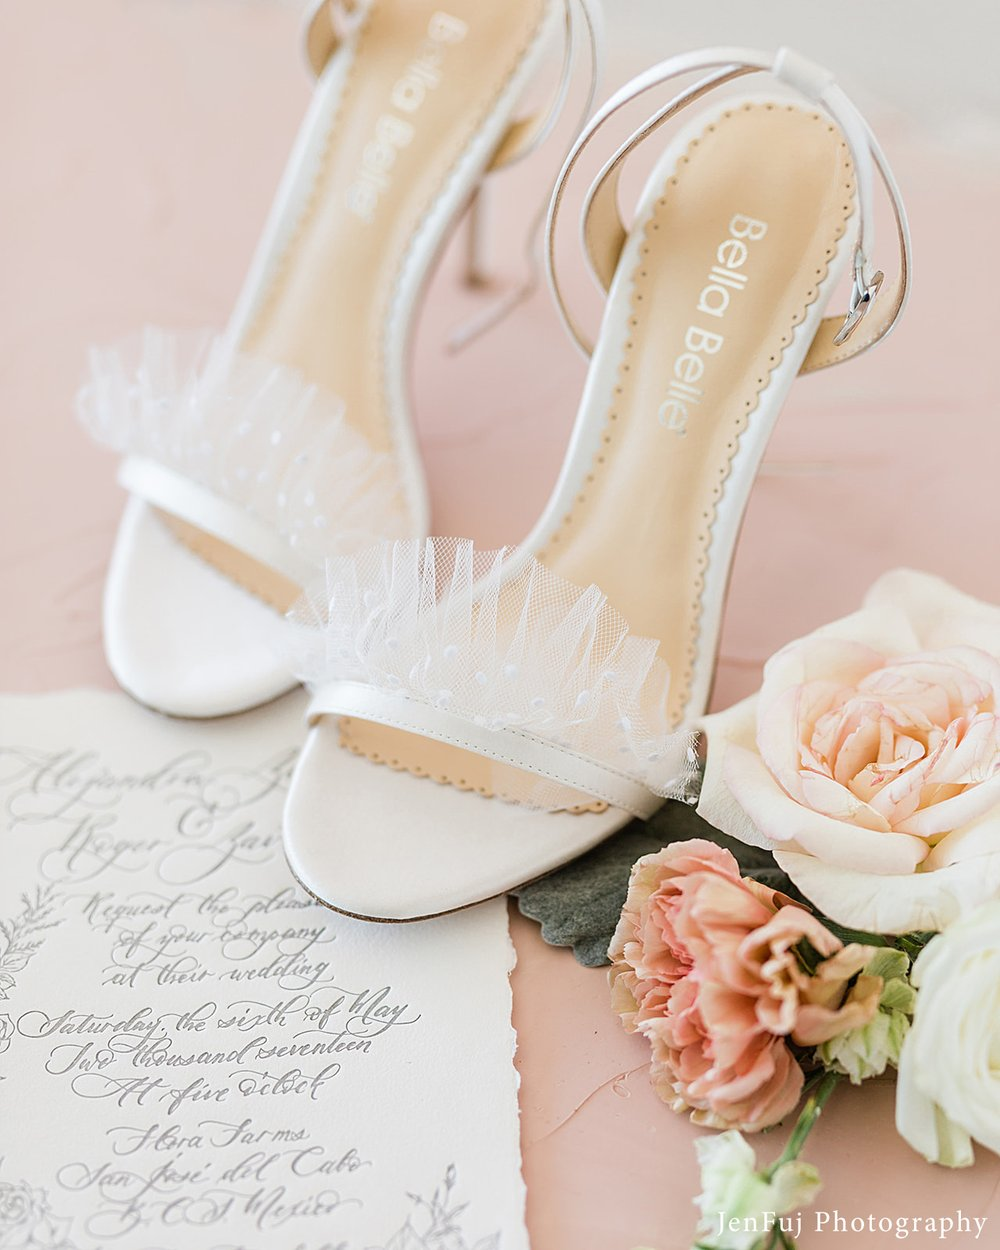 bella belle bridget ivory polka dot wedding shoes